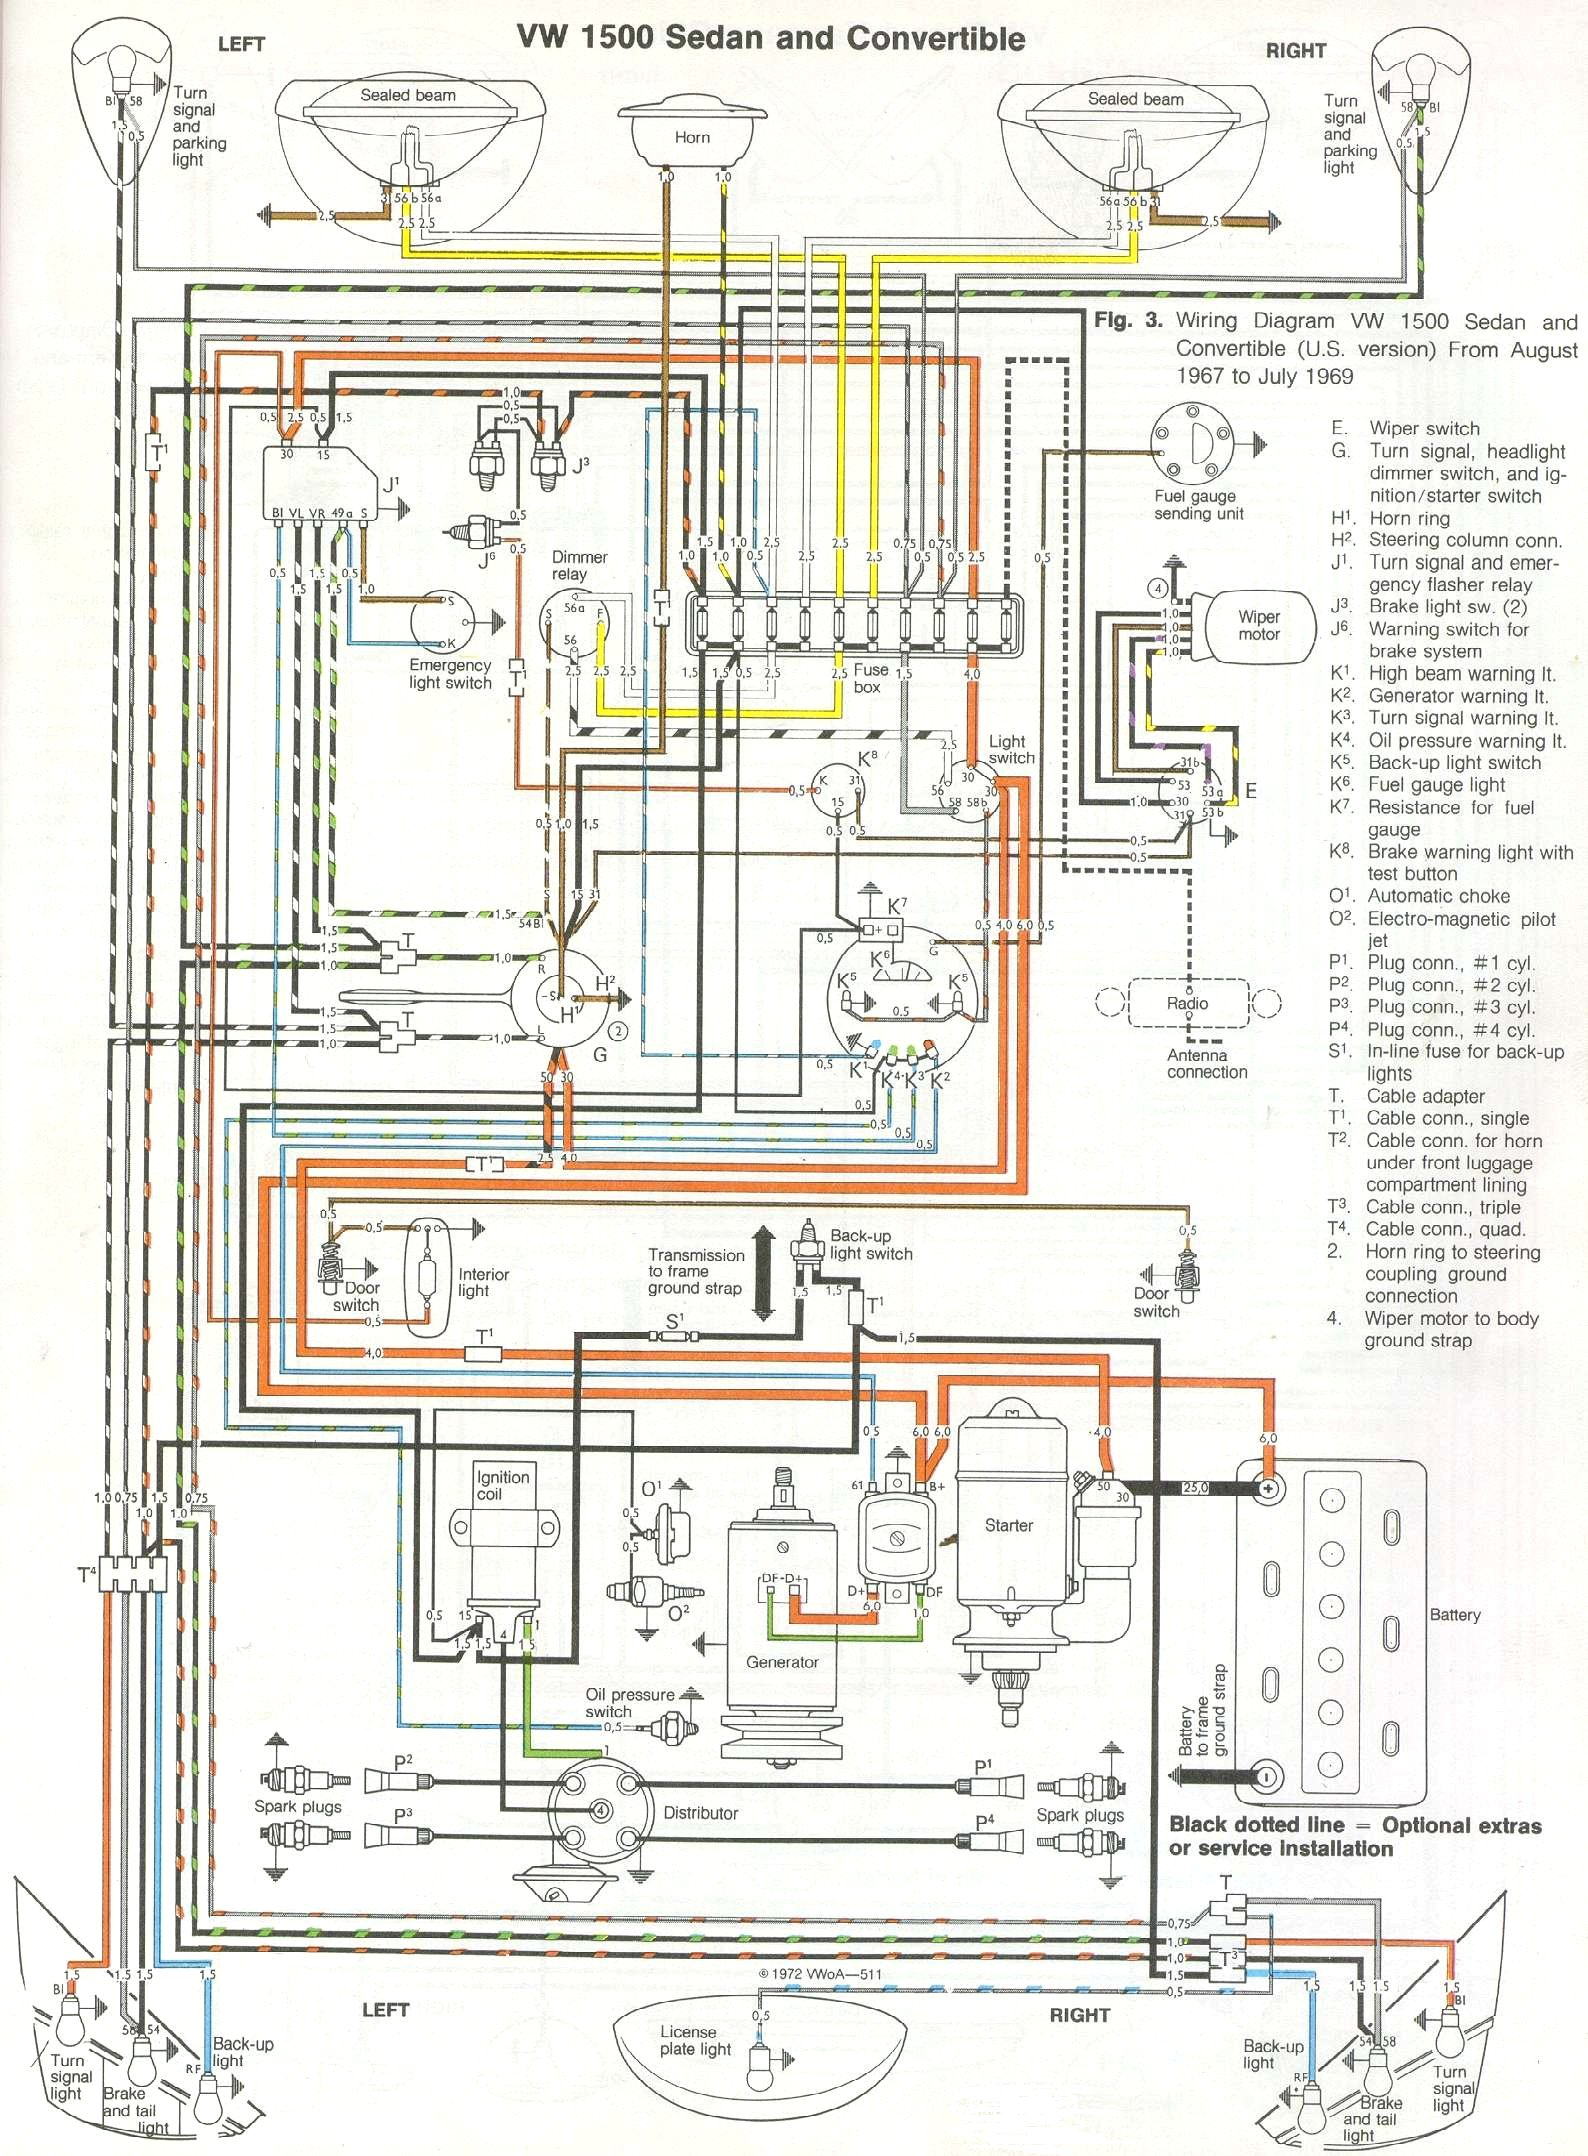 bug_6869 thesamba com type 1 wiring diagrams 1973 vw beetle wiring diagram at virtualis.co